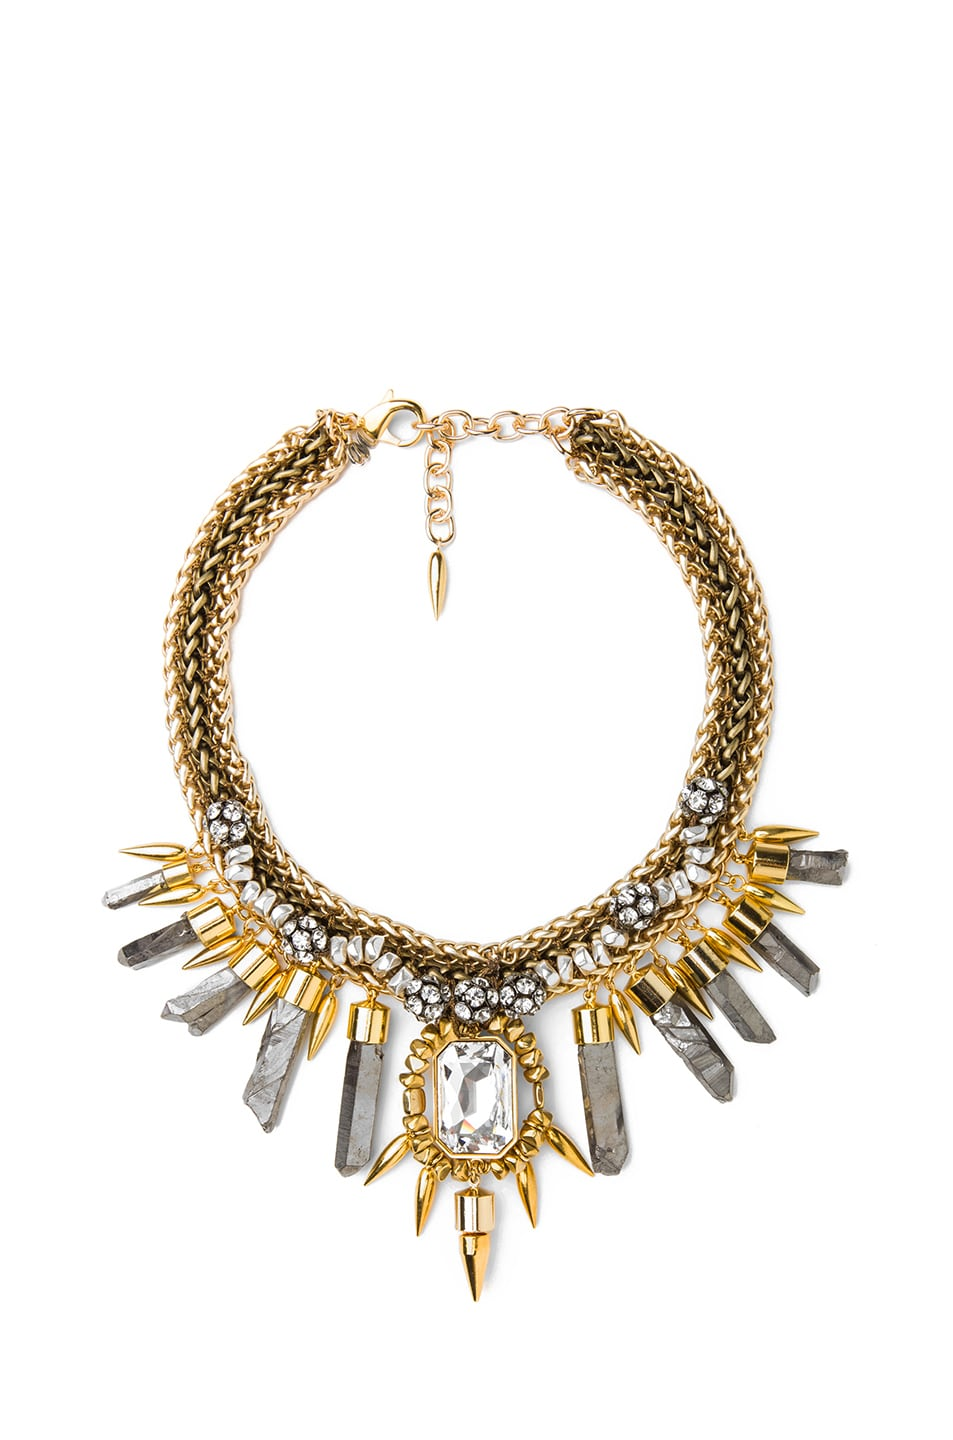 Image 1 of Assad Mounser Rex Plated Collar Necklace in Gold